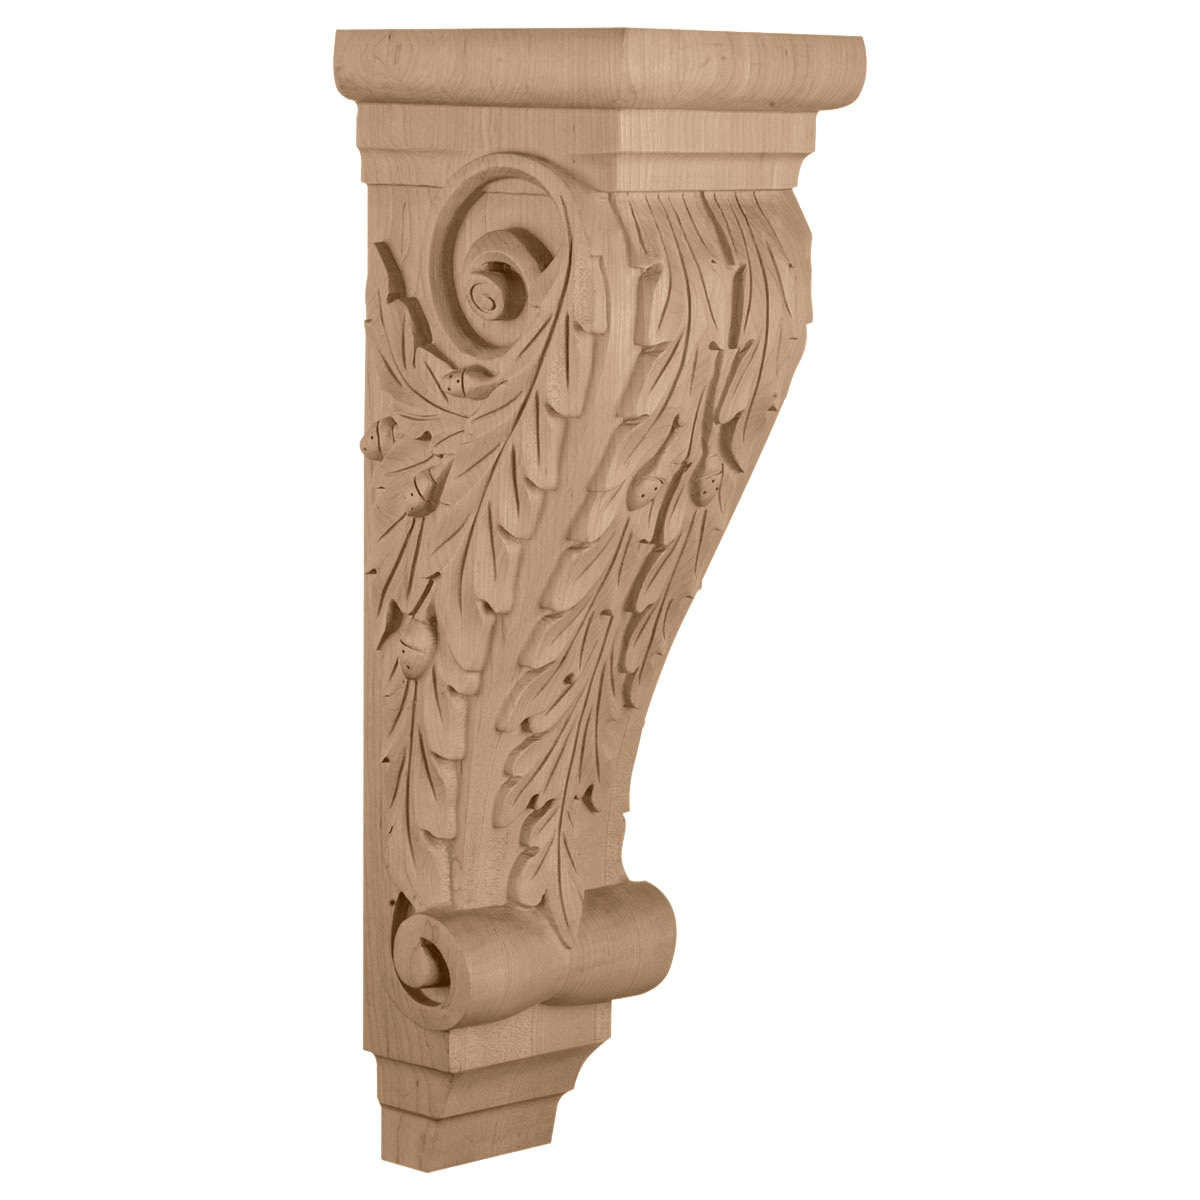 COROL8 Extra Large Oak Leaf Corbel